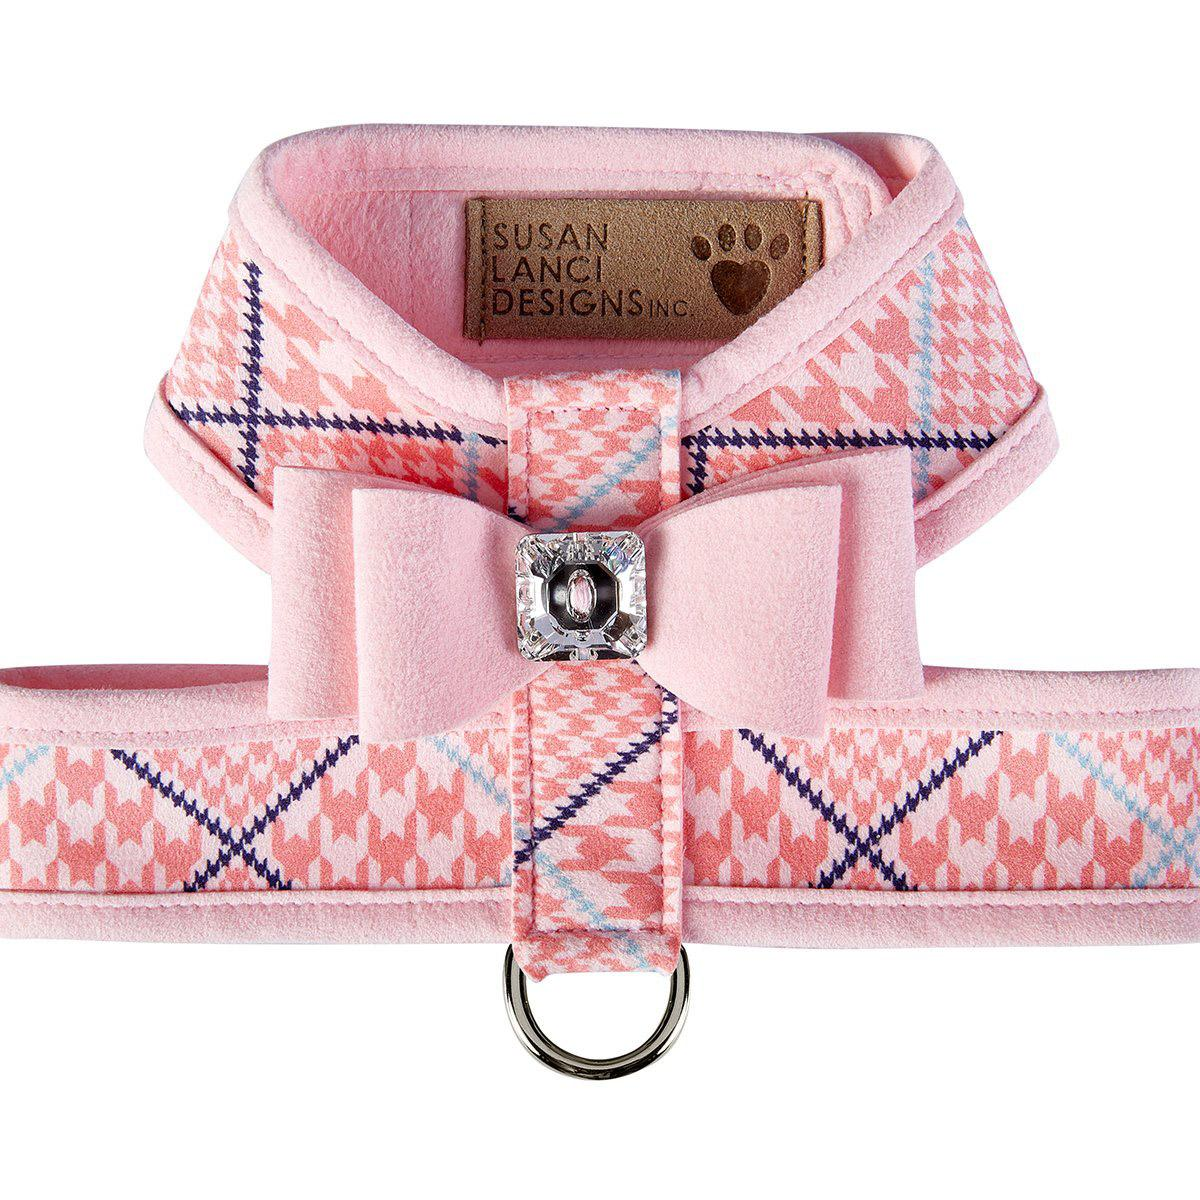 Peaches N' Cream Glen Houndstooth Tinkie Dog Harness with Big Bow and Trim by Susan Lanci - Puppy Pink